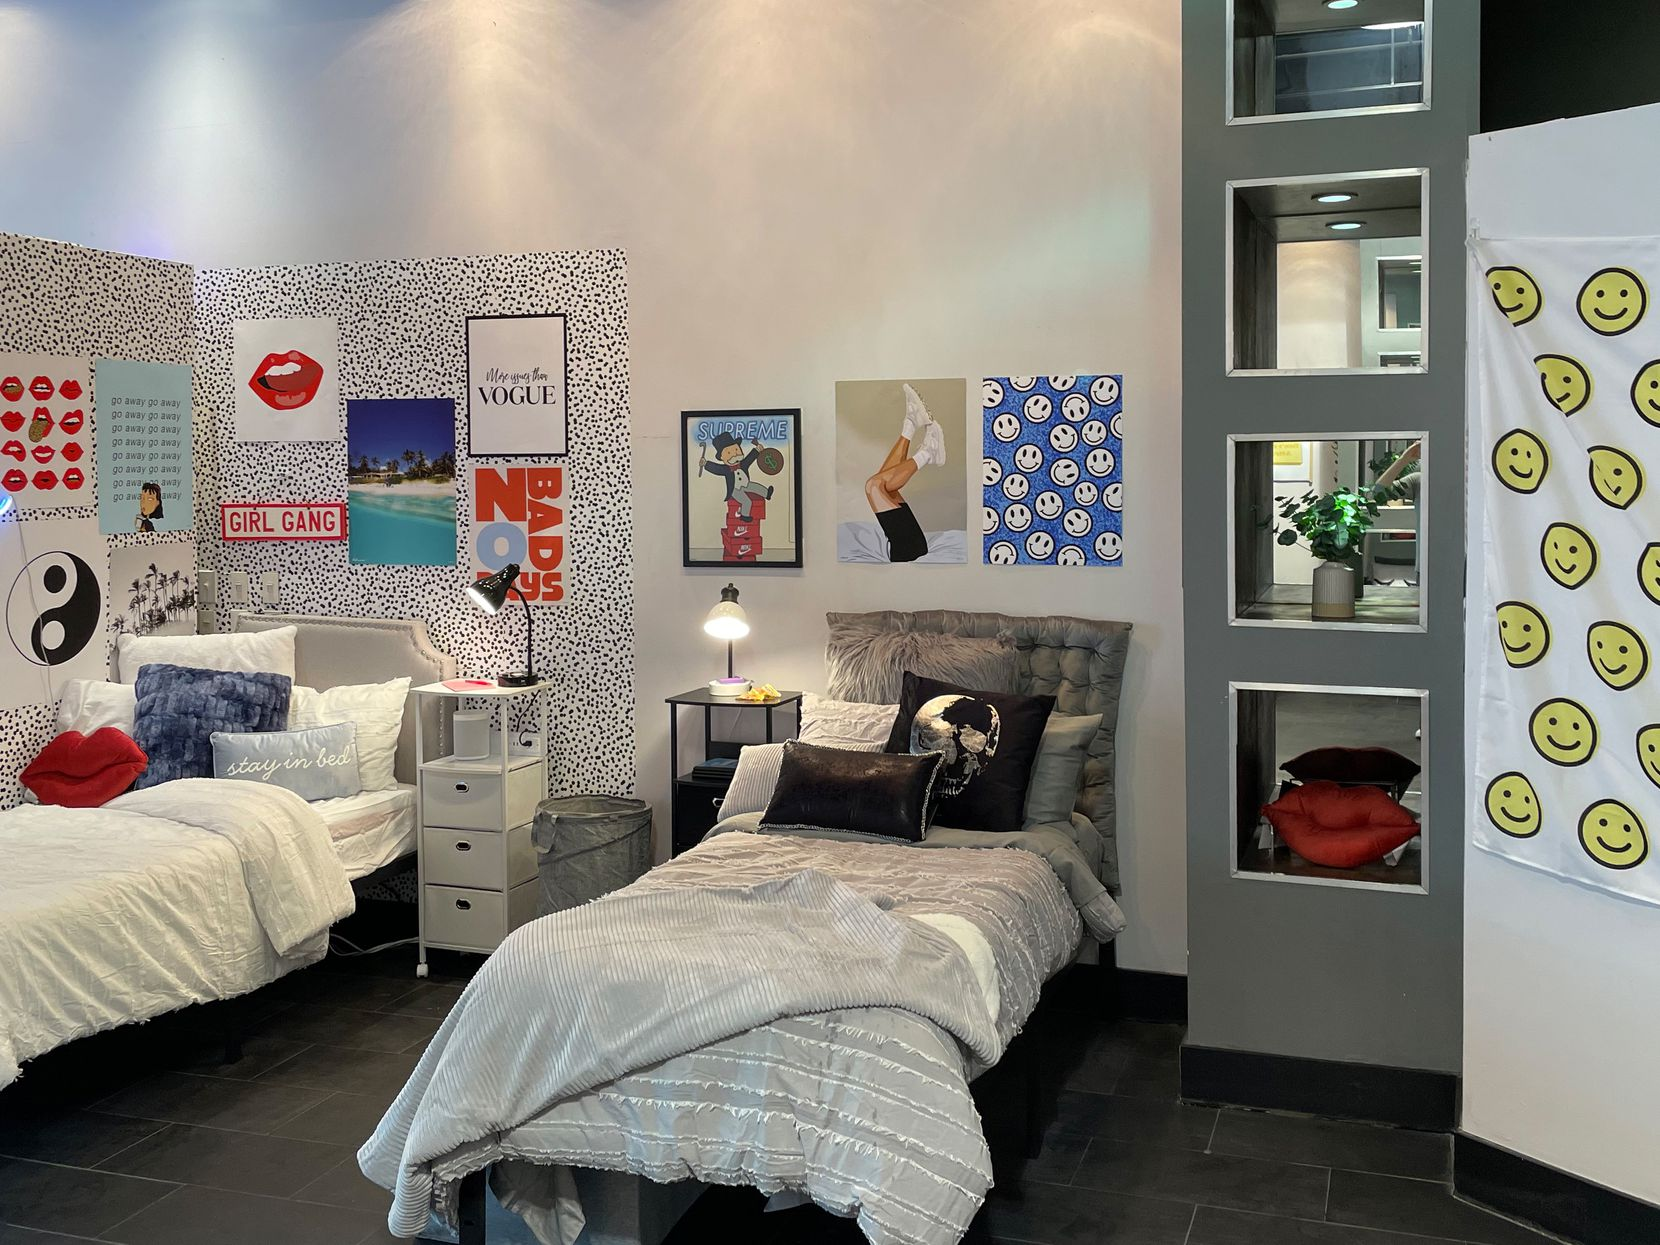 Dormify pop-ups feature several beds that stylists design to match the style of each customer based on an online survey.